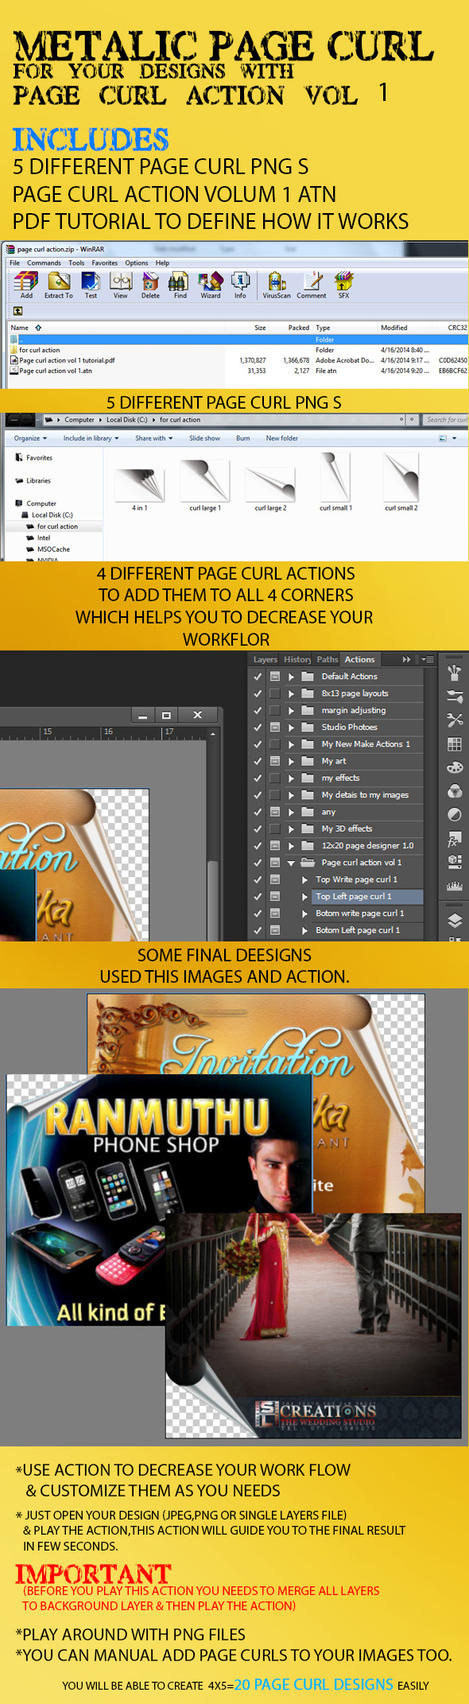 Metalic Page curl Action Vol 1 by cashedway